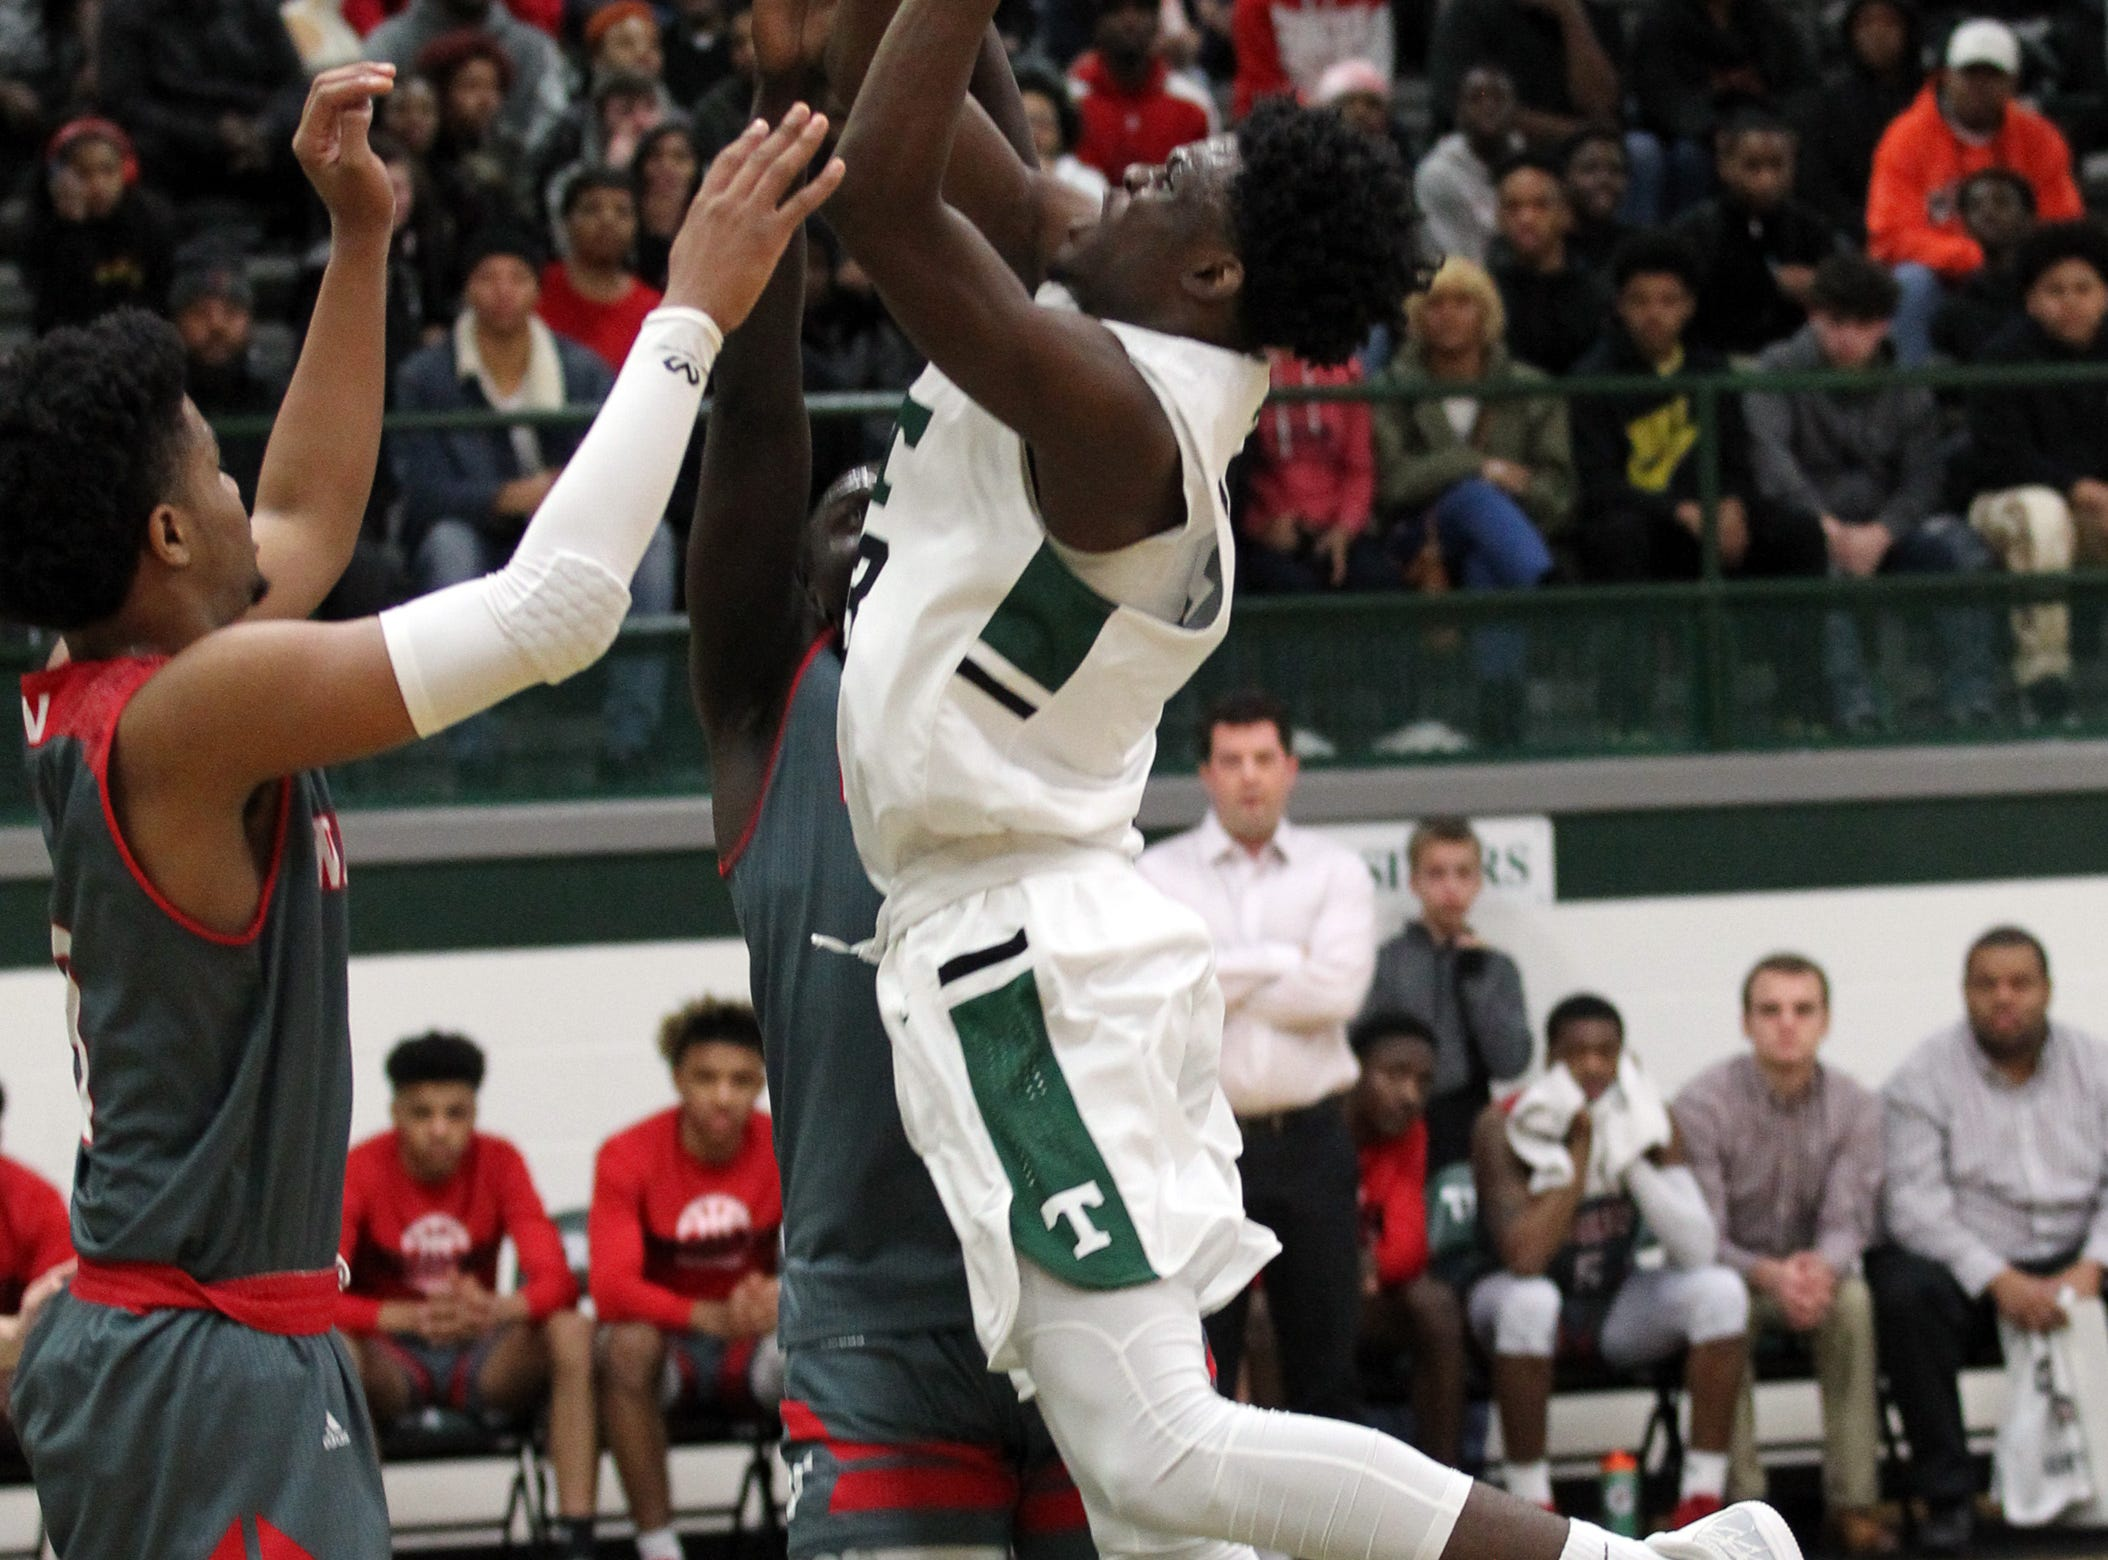 Trinity High School's Jamil Hardaway (23) fights to get his shot off under pressure from Waggener High School's Dallas Rufus (3) during the first half of play at Trinity High School in Louisville, Kentucky, Jan. 11,  2019.